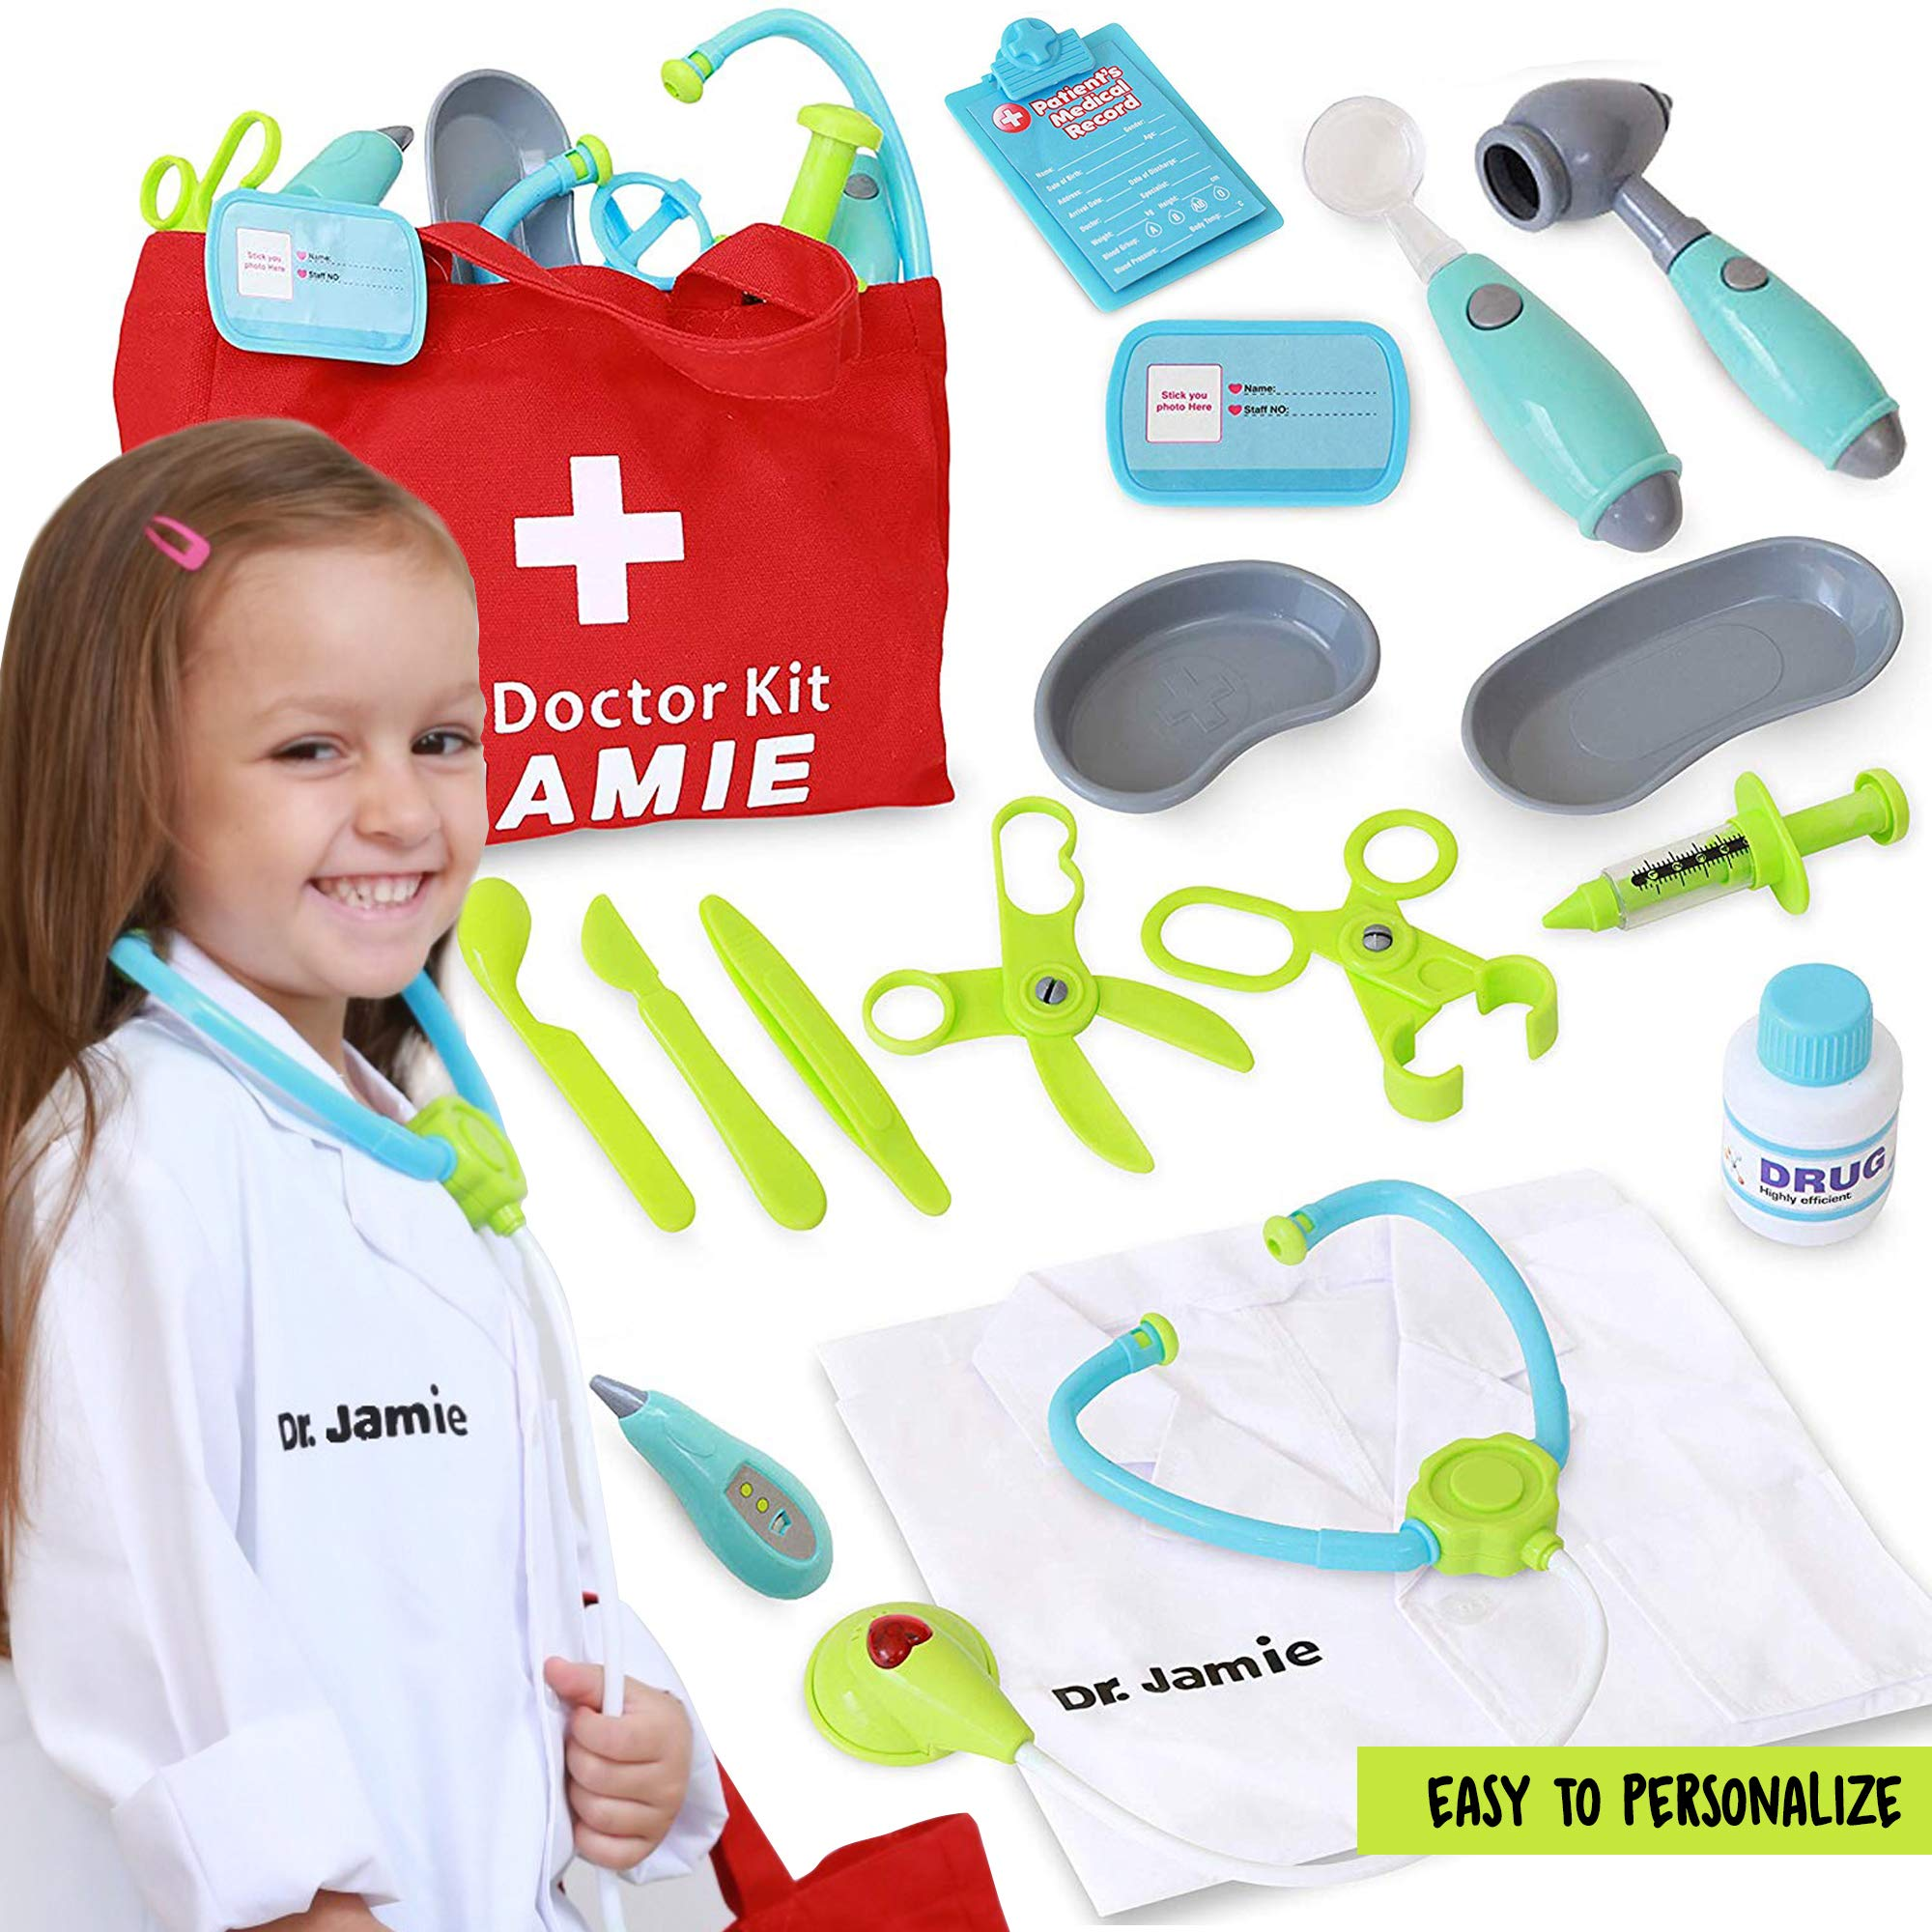 Customizable Pretend Play Doctor Set with Custom Doctor Coat and Bag - Light Up Stethoscope, Needle, Thermometer, etc. Educational Toy by Dreamy Accessories